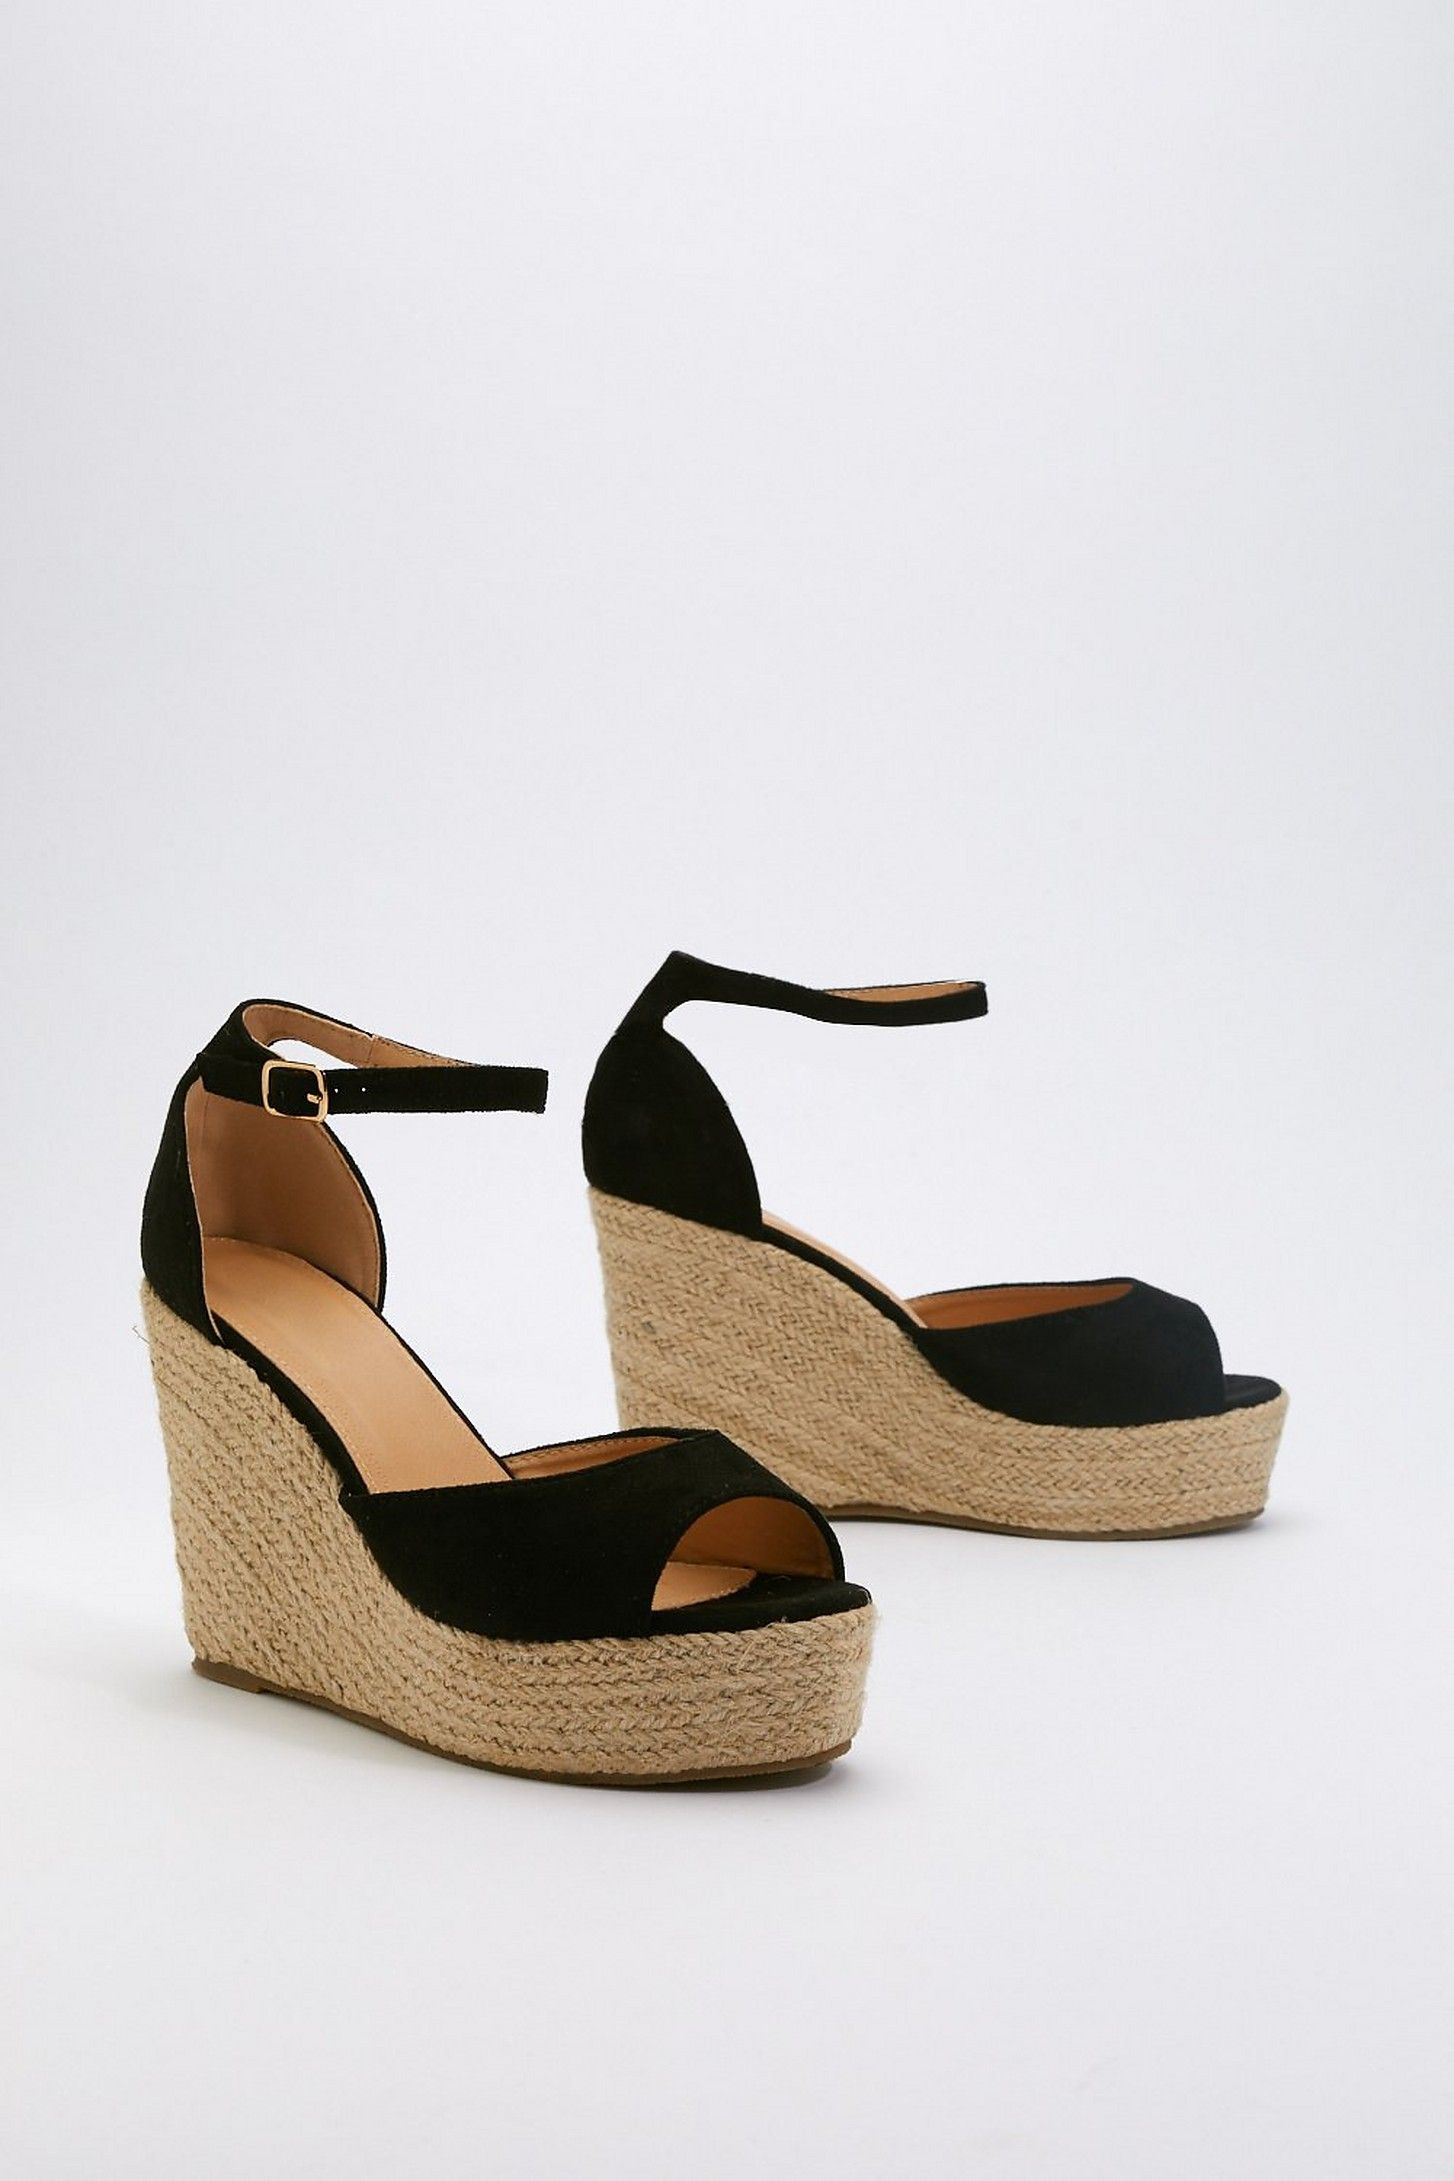 ea1b3bb68520 Sunny Afternoon Faux Suede Woven Wedges in 2019